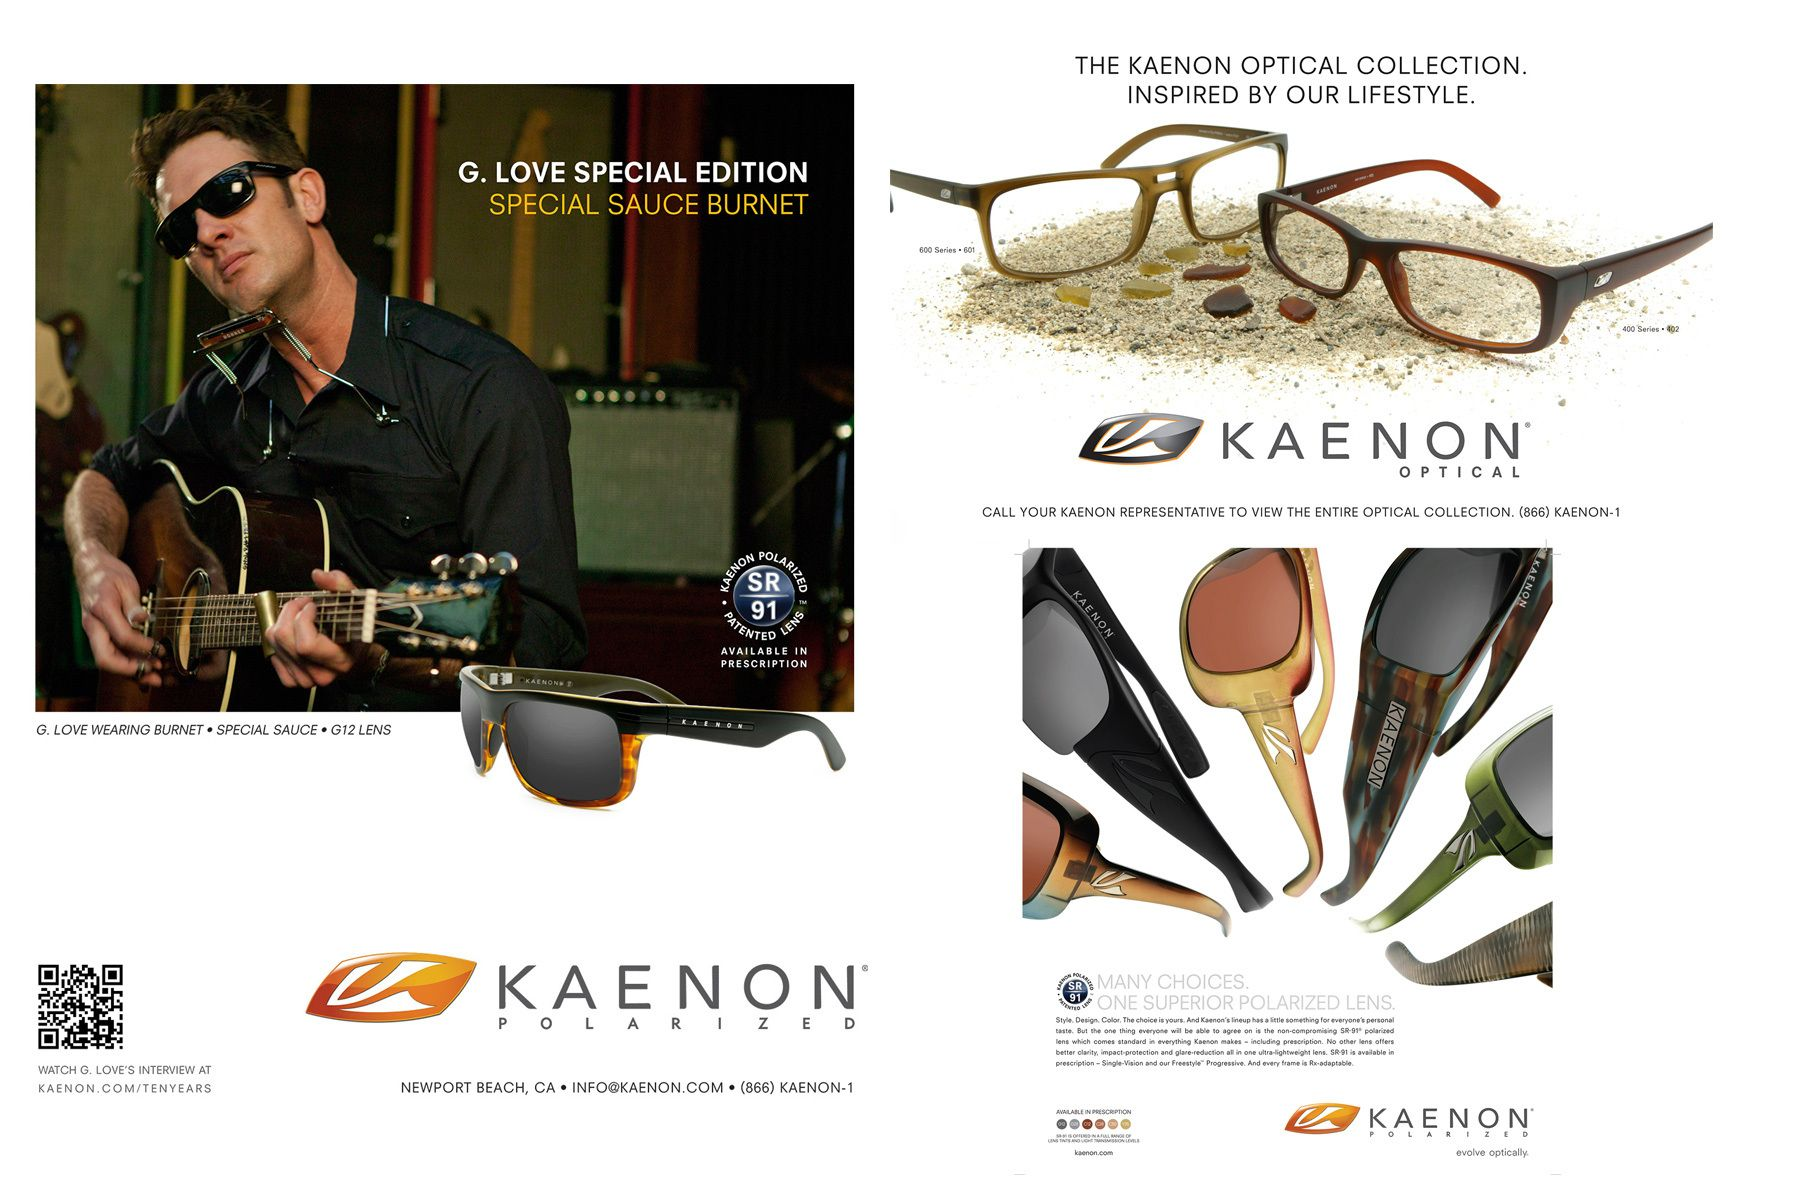 G. Love for Kaenon Polarized, along with various product stills